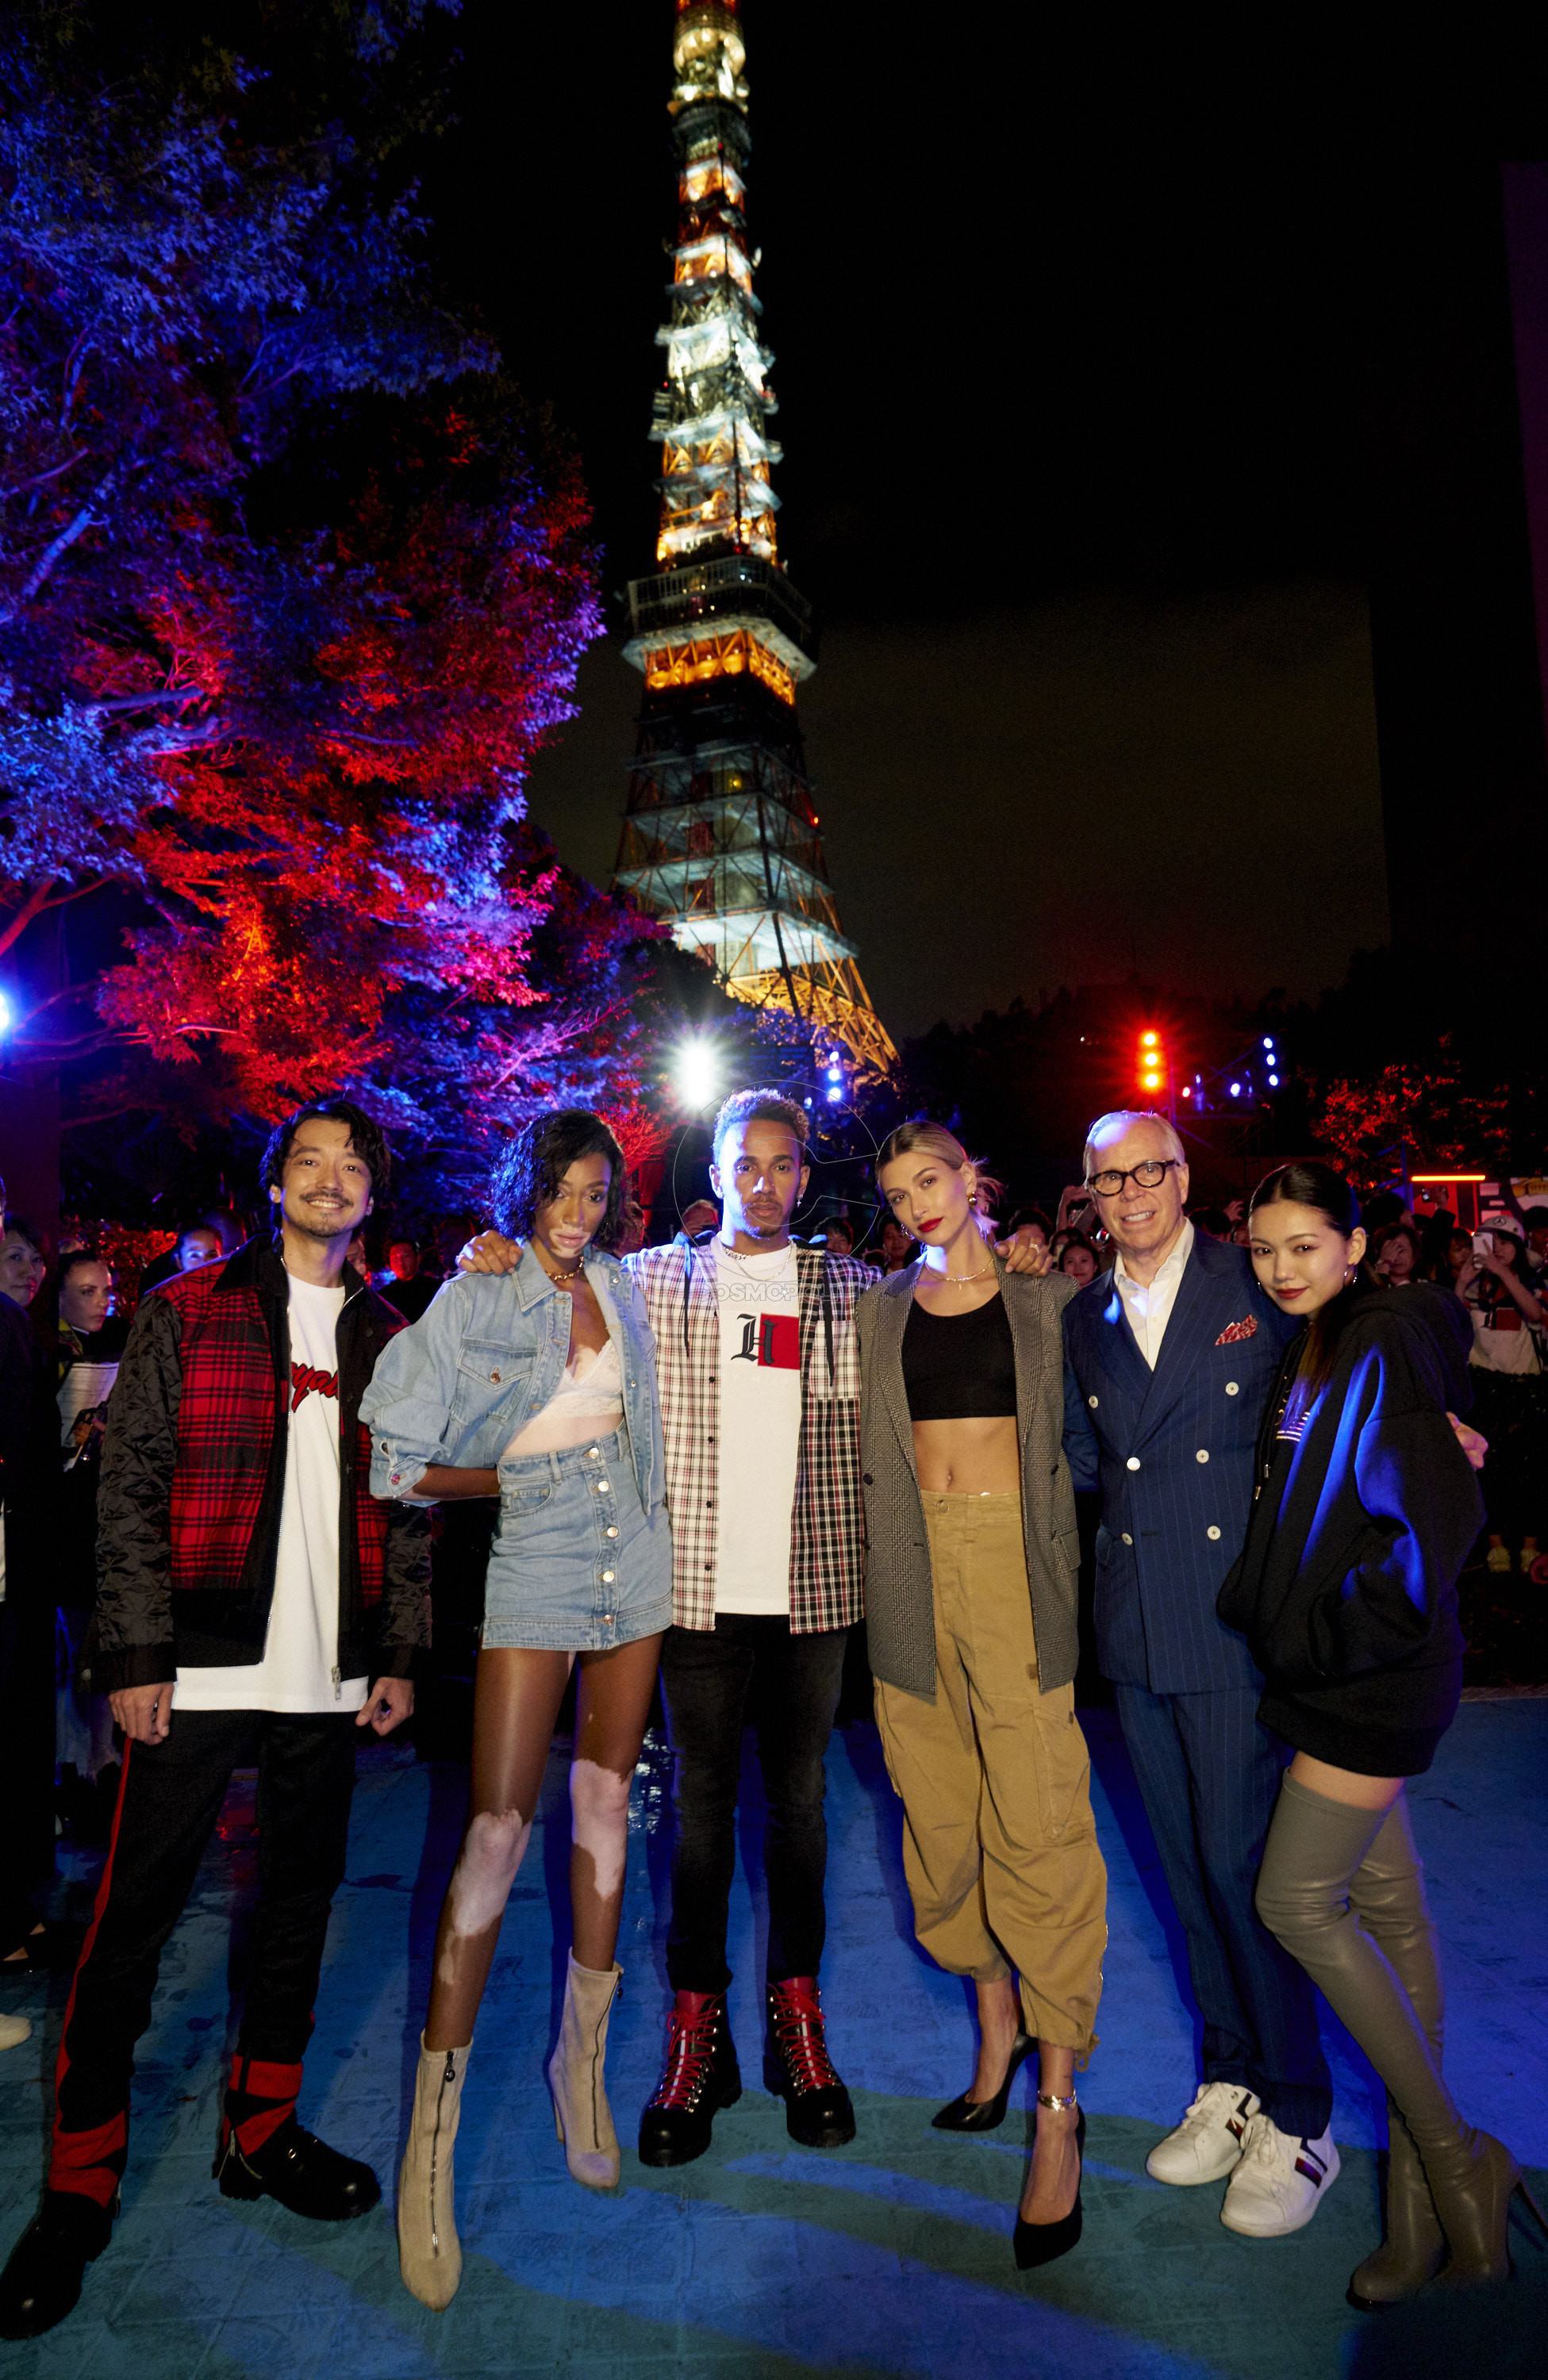 Nobu, Winnie Harlow, Lewis Hamilton, Hailey Baldwin, Tommy Hilfiger and Fumi